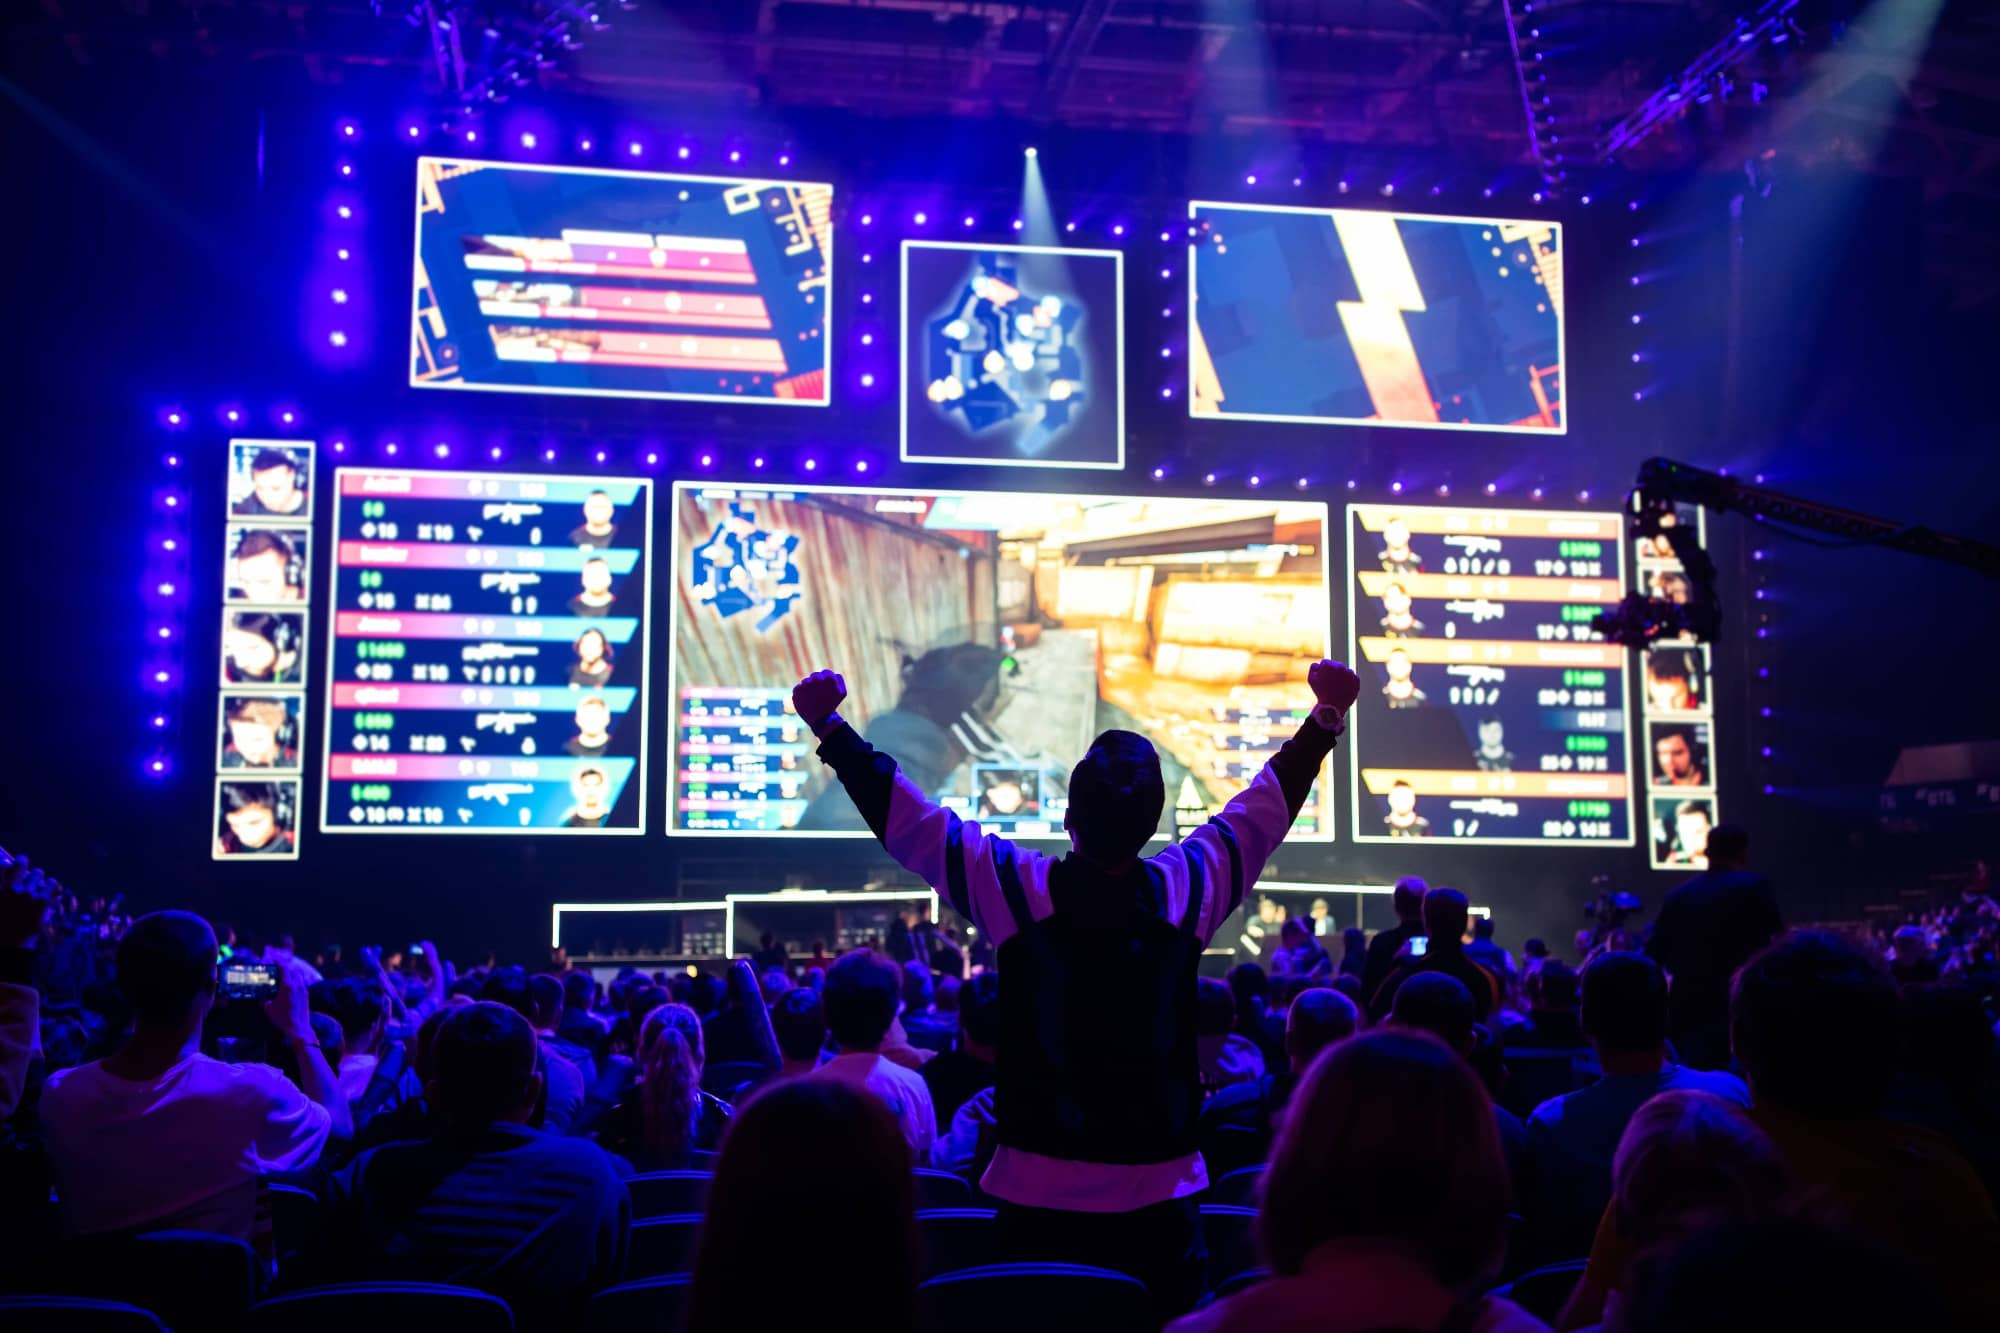 Big esports event. Video games fan on a tribune at tournament's arena with hands raised. Cheering for his favorite team